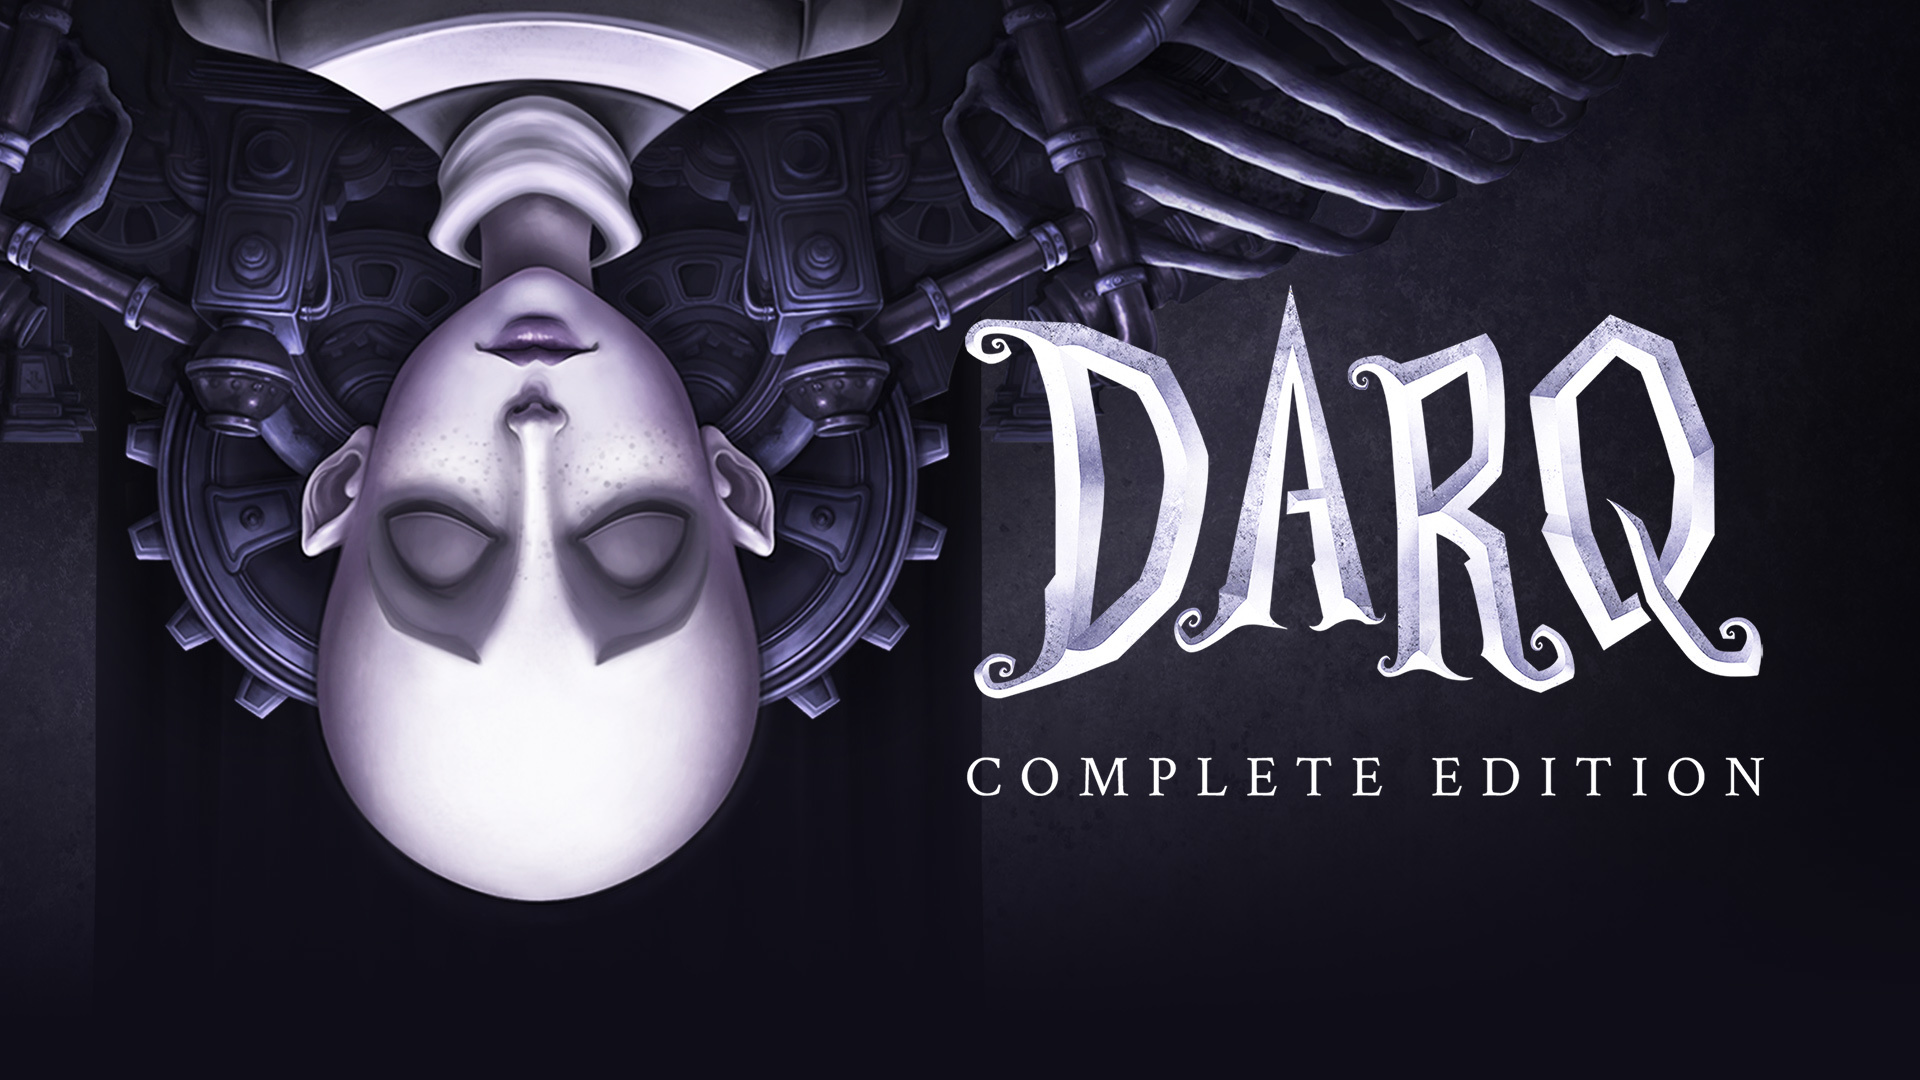 darq complete edition game wallpaper 74065